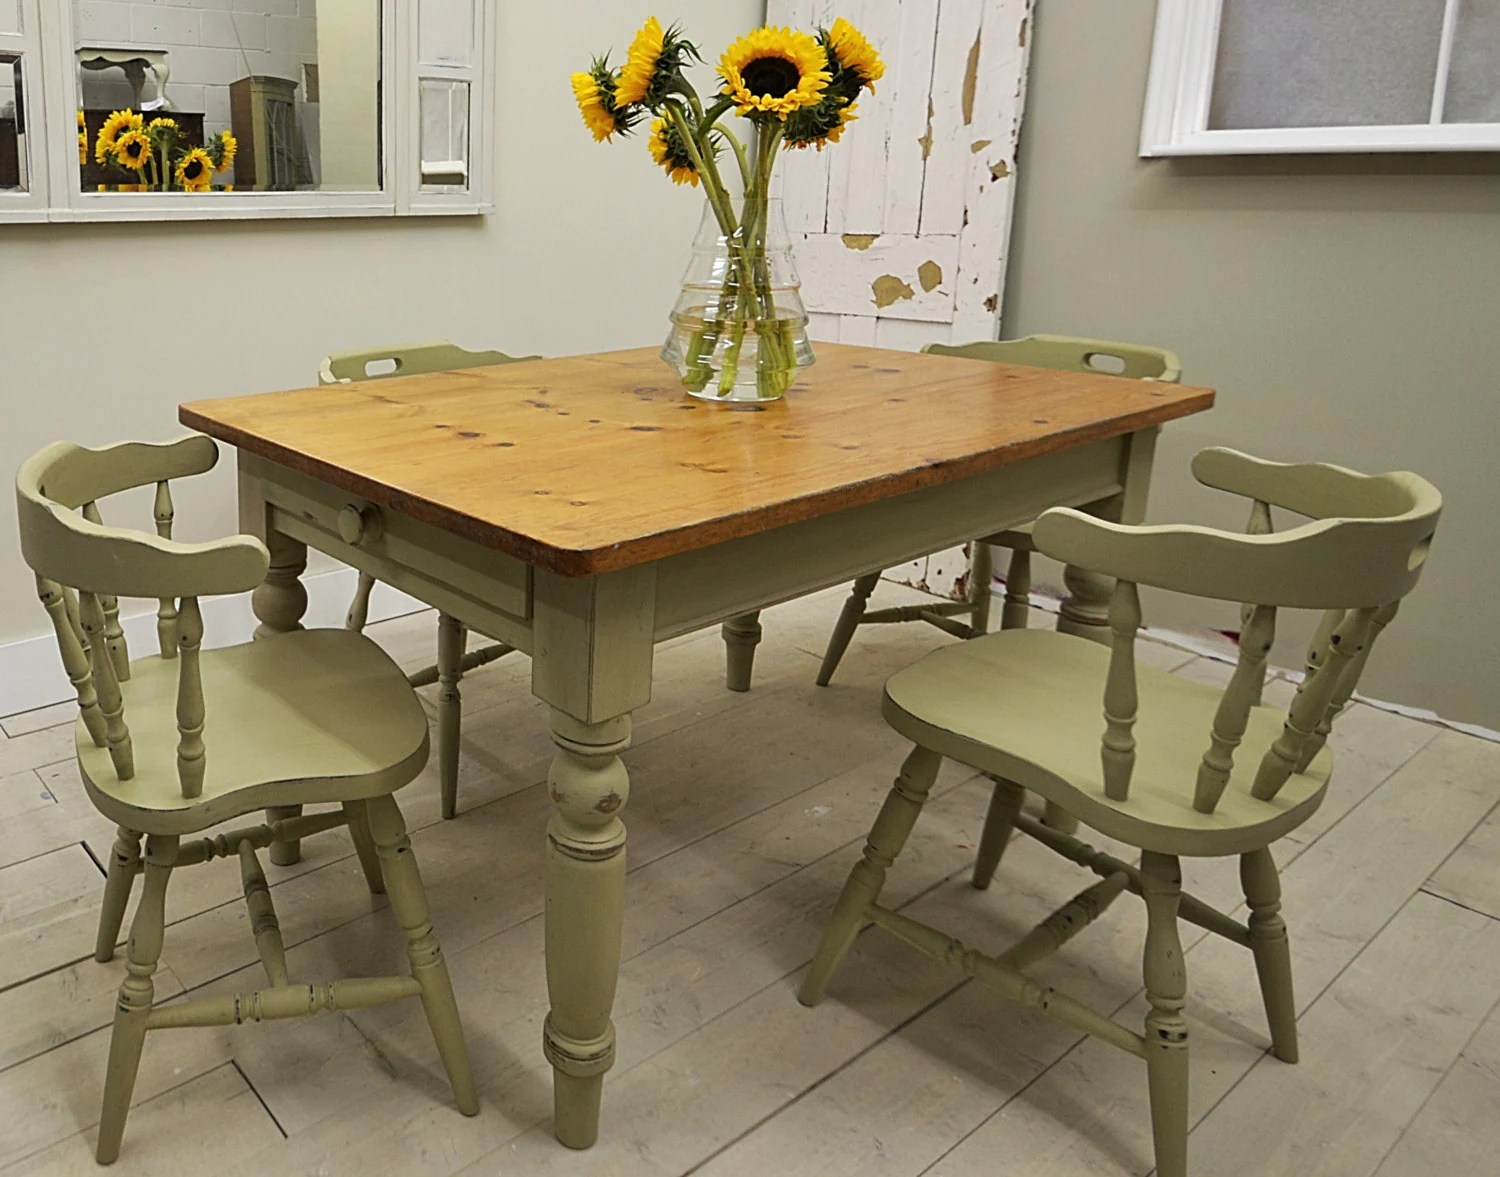 shabby chic chair tall director chairs farmhouse dining table with 4 captains